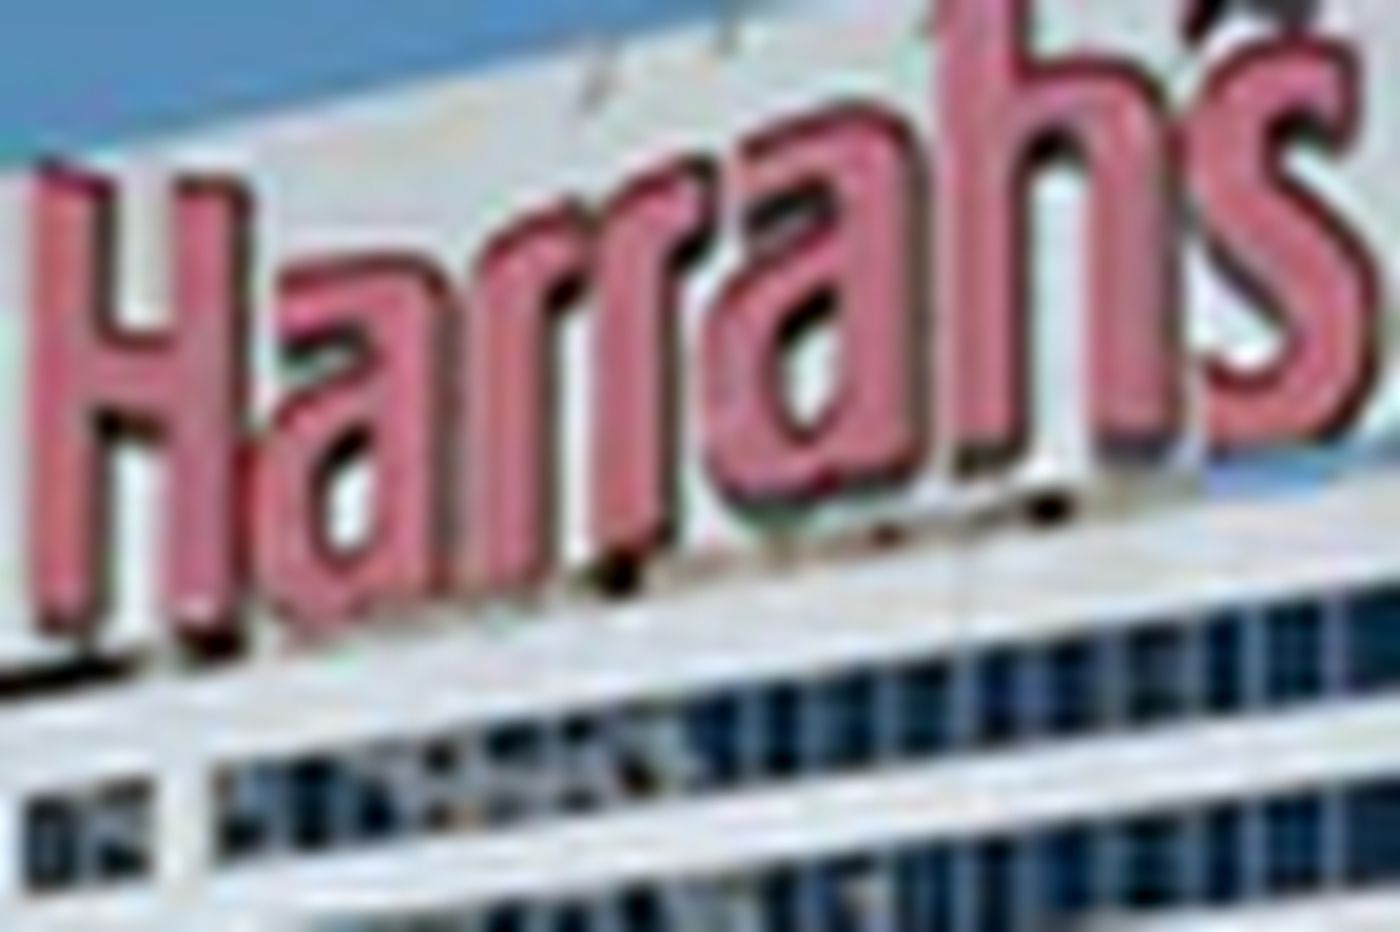 Say goodbye to Harrah's 'Chester'